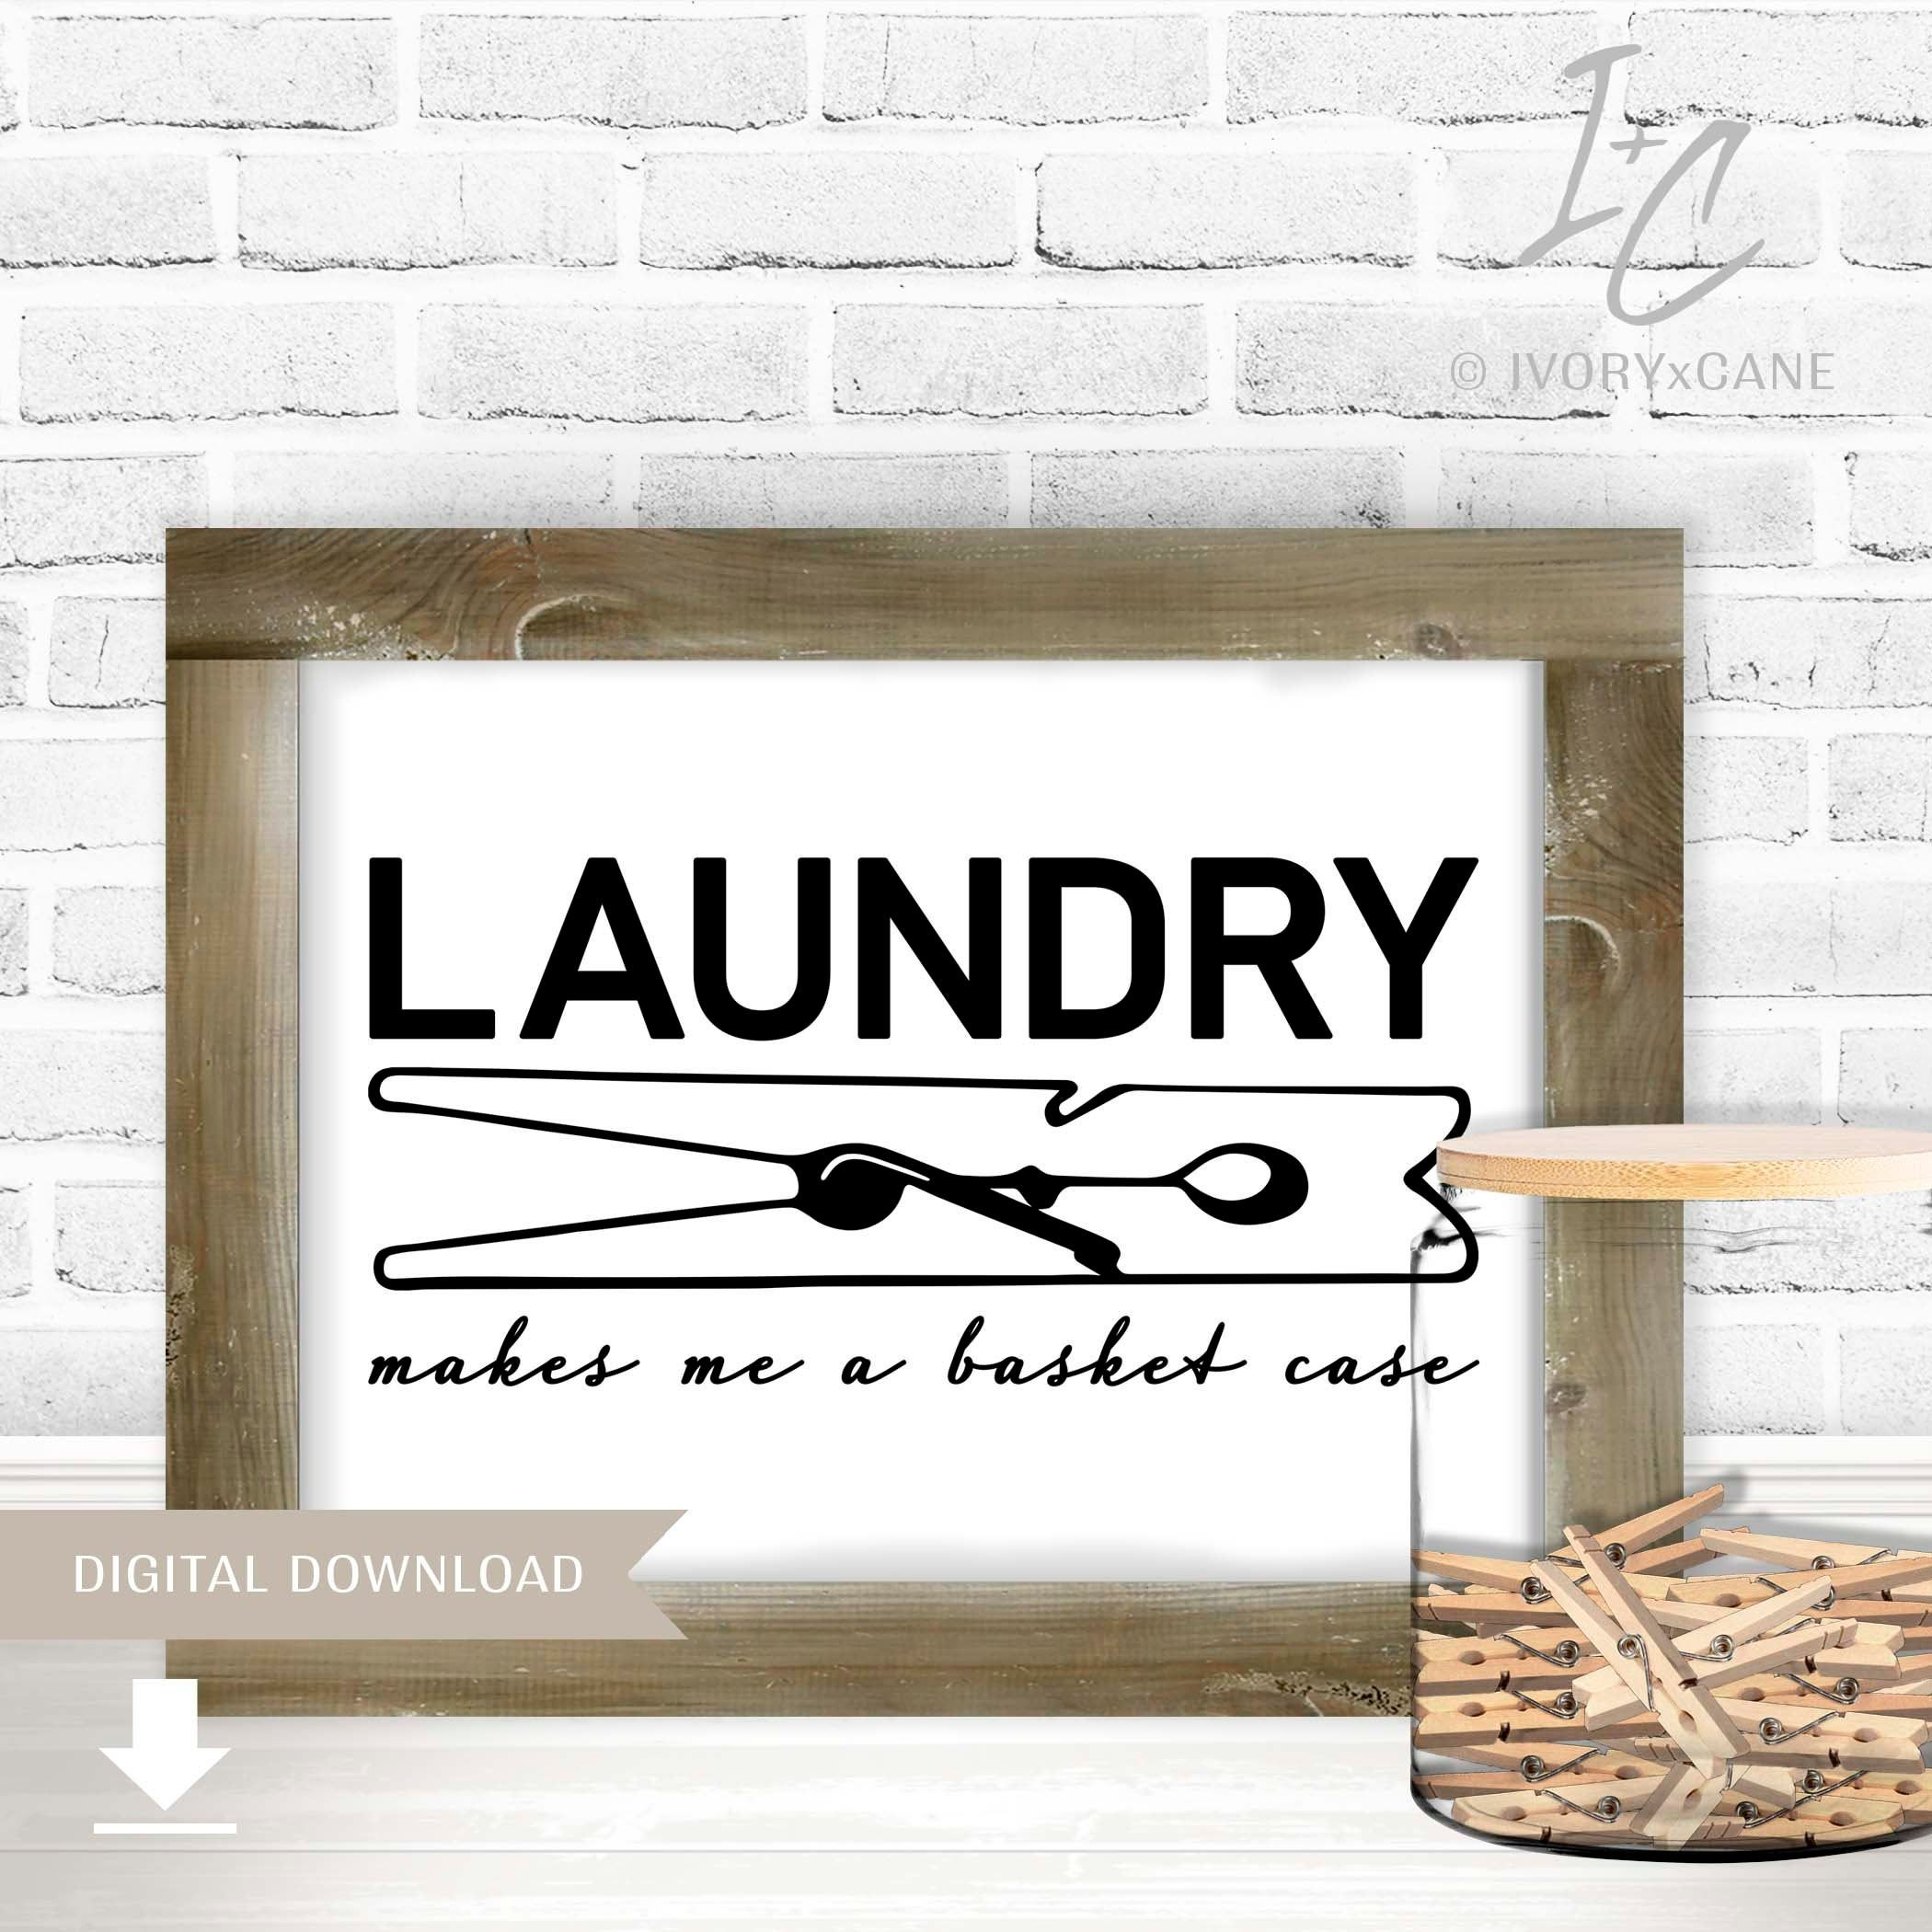 Printable Wall Art, Laundry Printable, Laundry Sign, Laundry Humor, Laundry Decor, Laundry Room Print, DIY Decor, Laundry Wall Art #laundrysigns